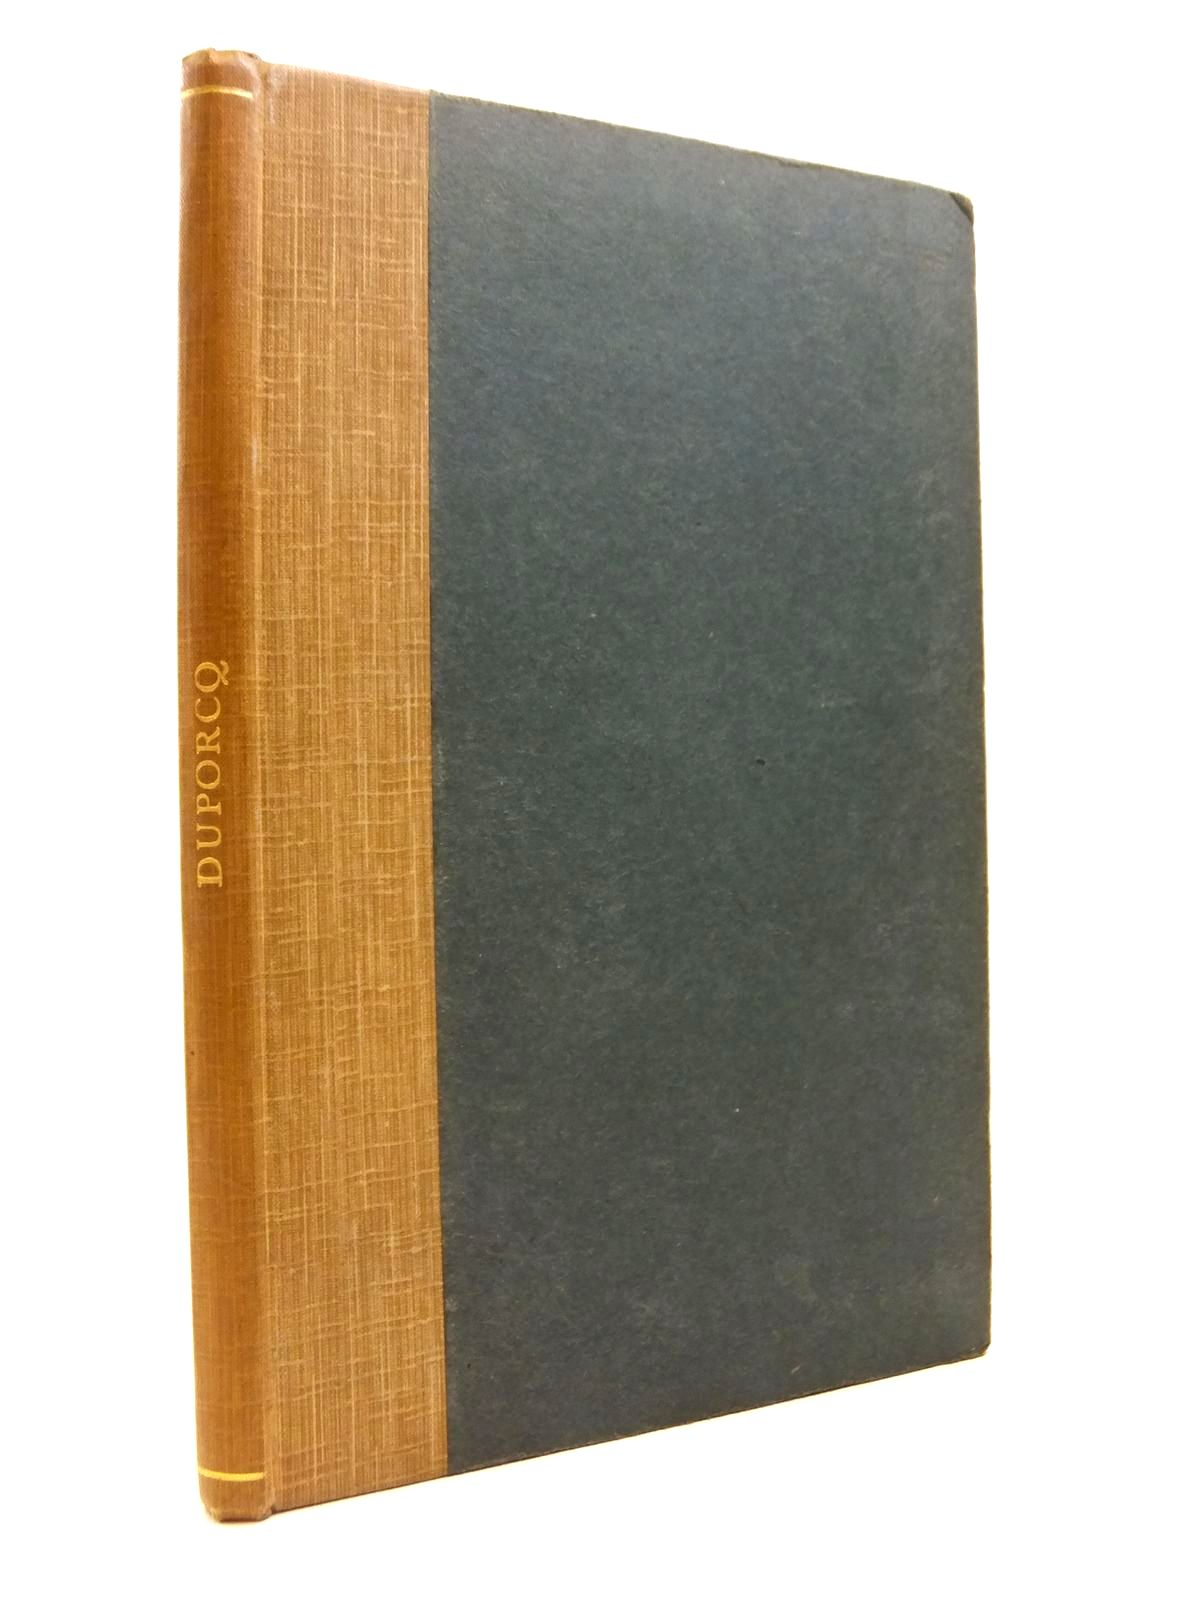 Photo of PREMIERS PRINCIPES DE GEOMETRIE MODERNE written by Duporcq, Ernest<br />Bricard, Raoul published by Gauthier-Villars (STOCK CODE: 1208339)  for sale by Stella & Rose's Books